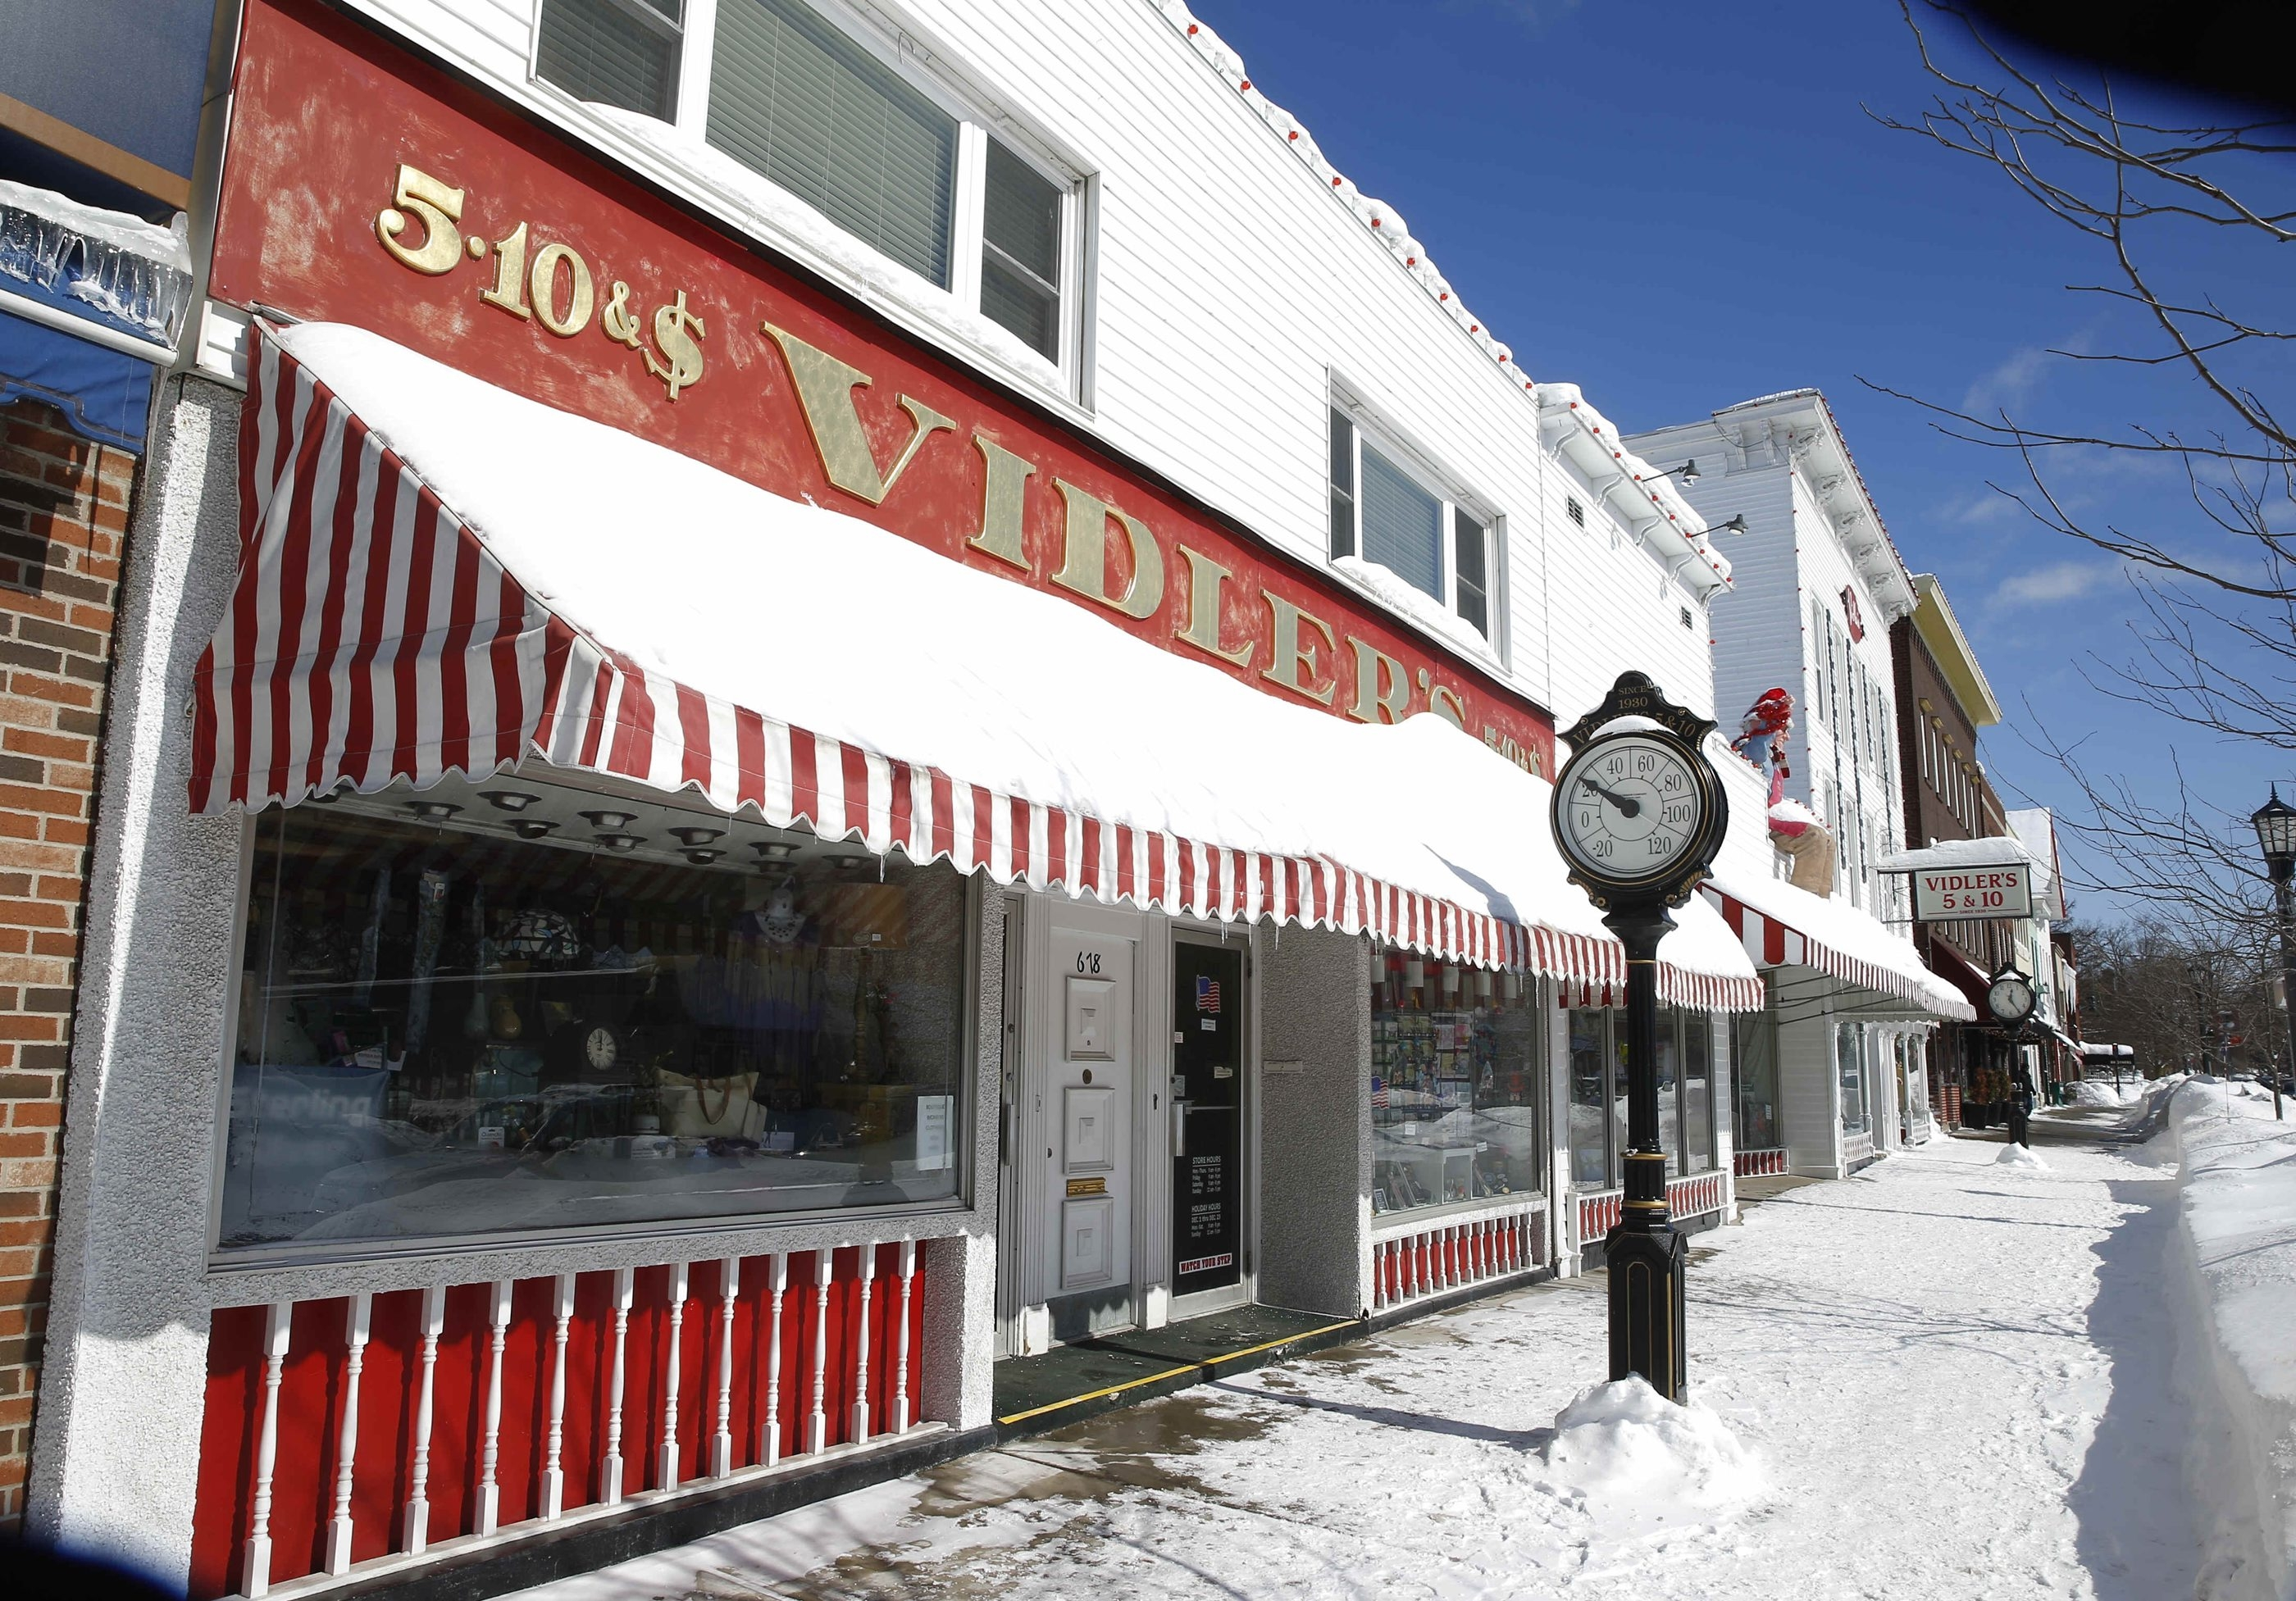 Vidler's on Main Street in East Aurora is  decked out for christmas for the filming of a movie in East Aurora, N.Y. on Friday, Feb. 20, 2015.    (John Hickey/Buffalo News)